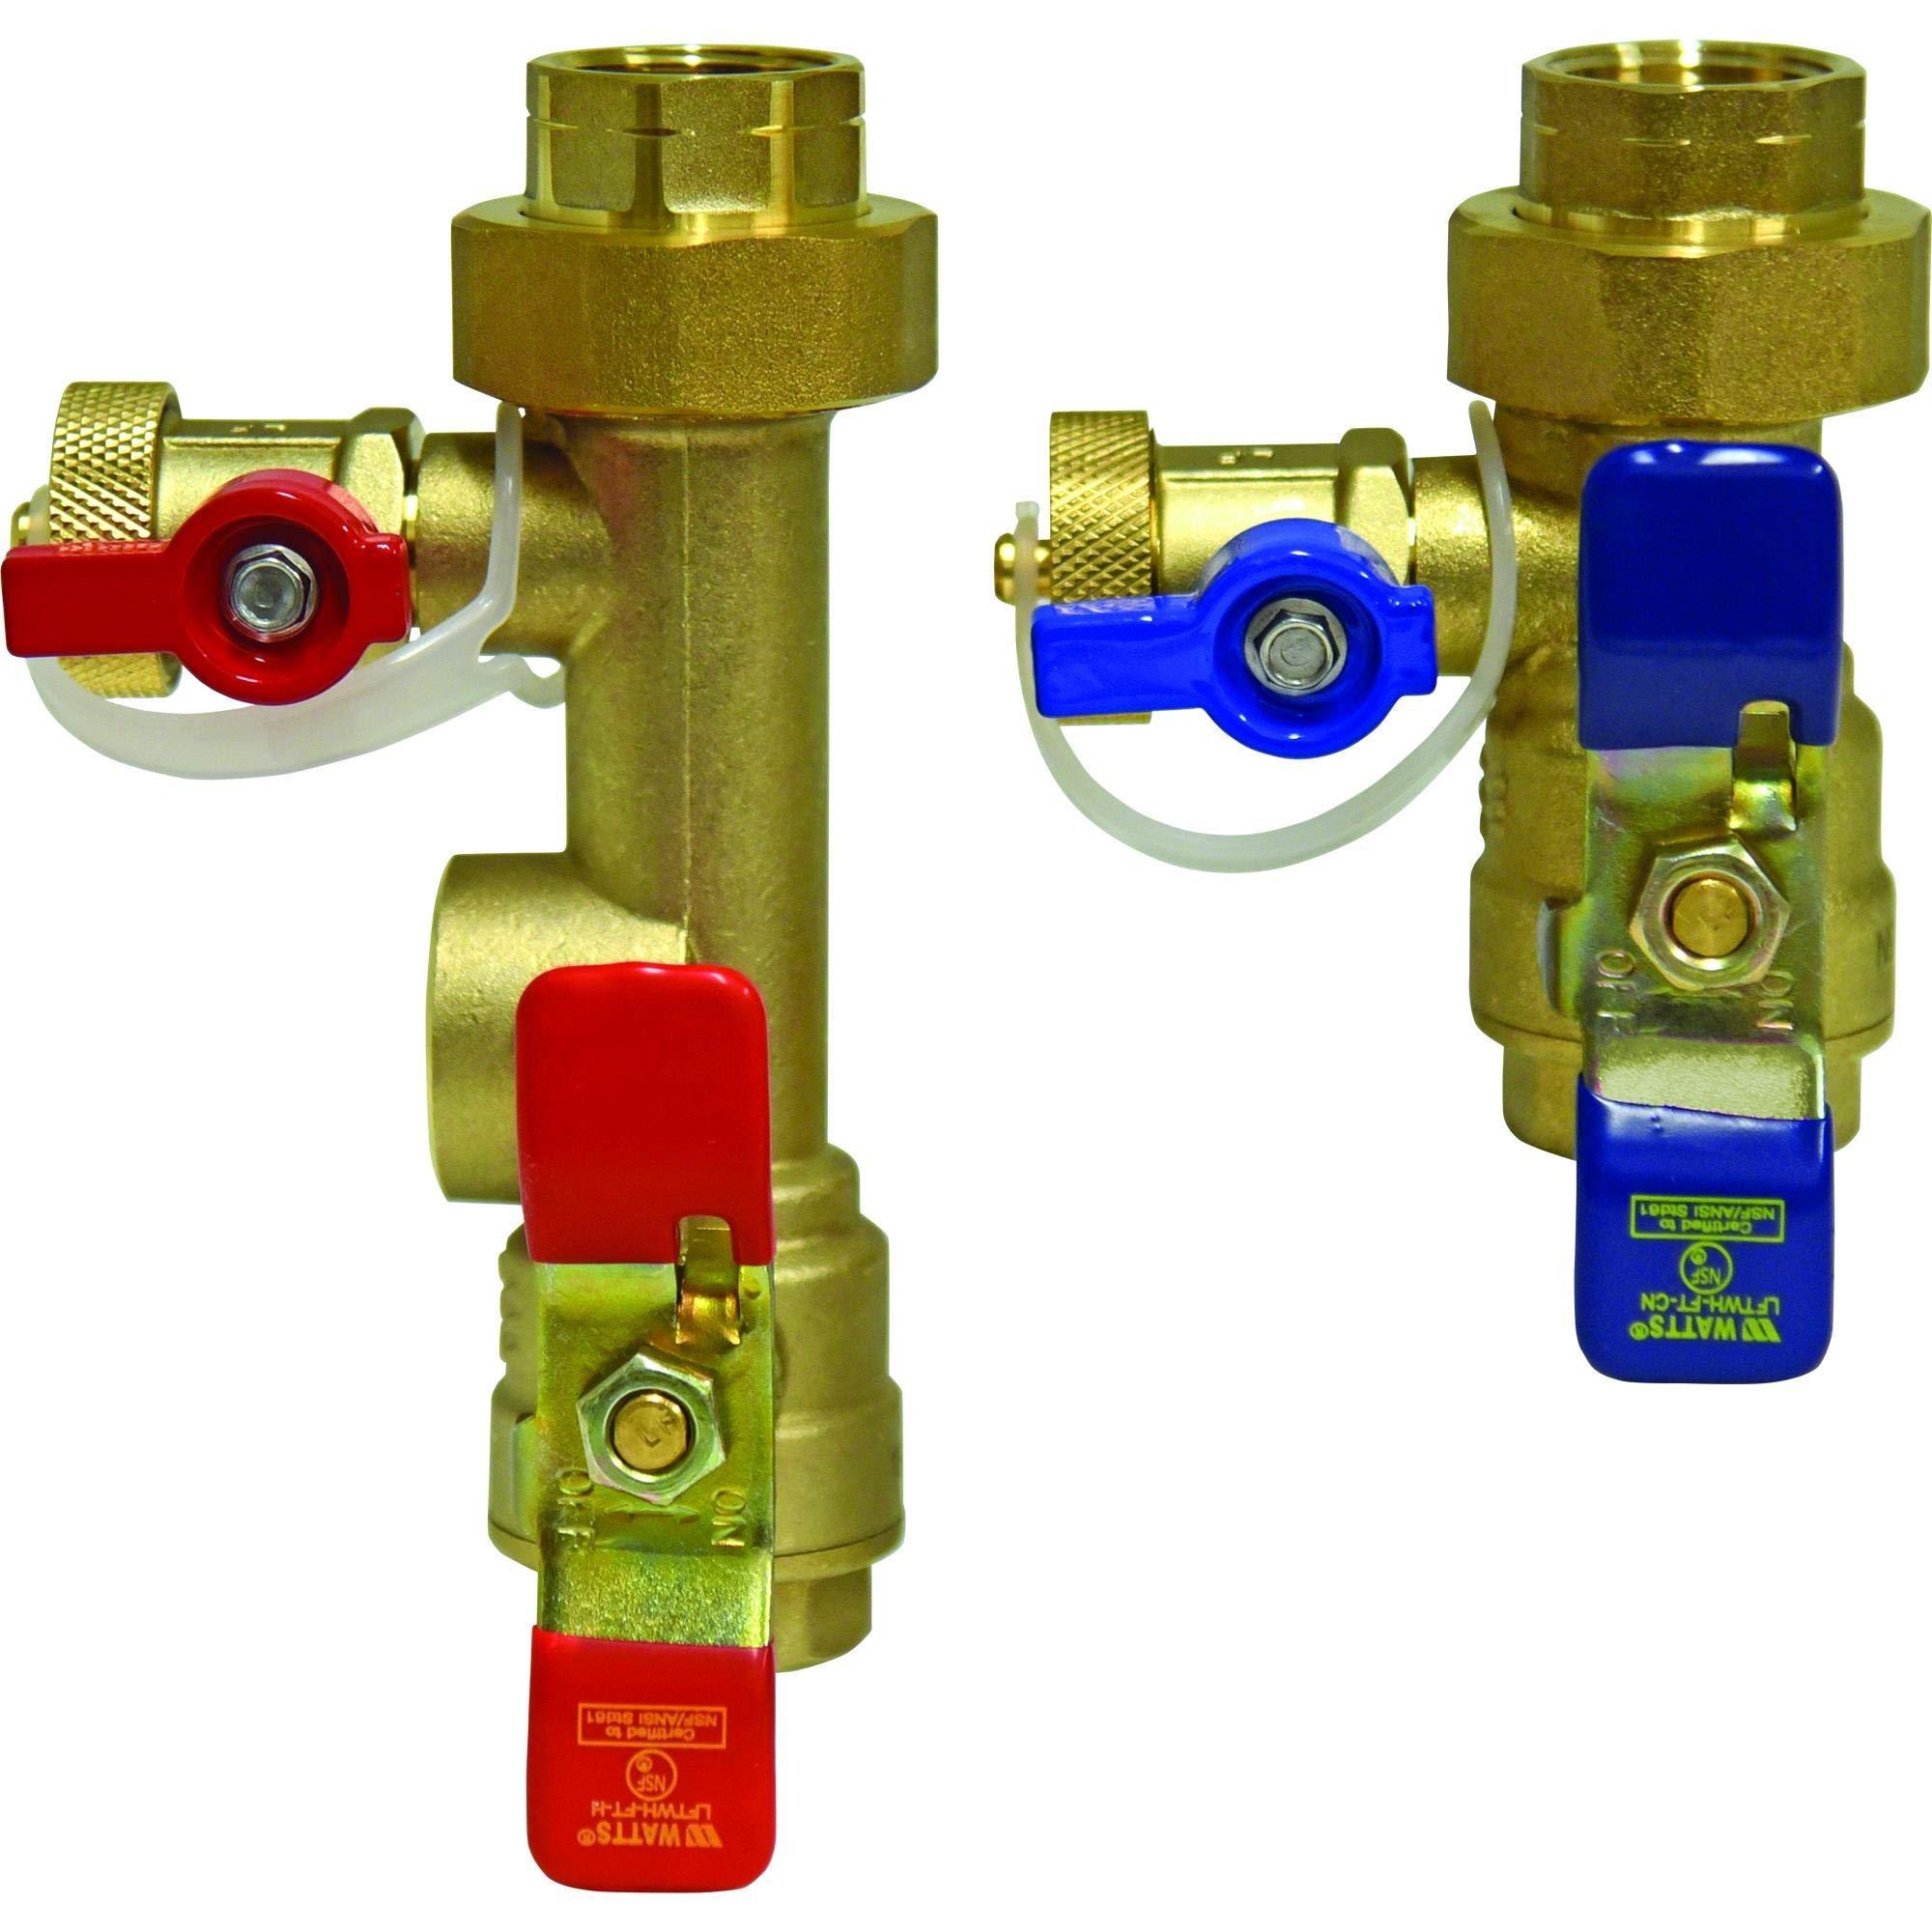 Watts LFTWH-FT-HCN Service Valve Kit for Tankless Water Heater by Watts